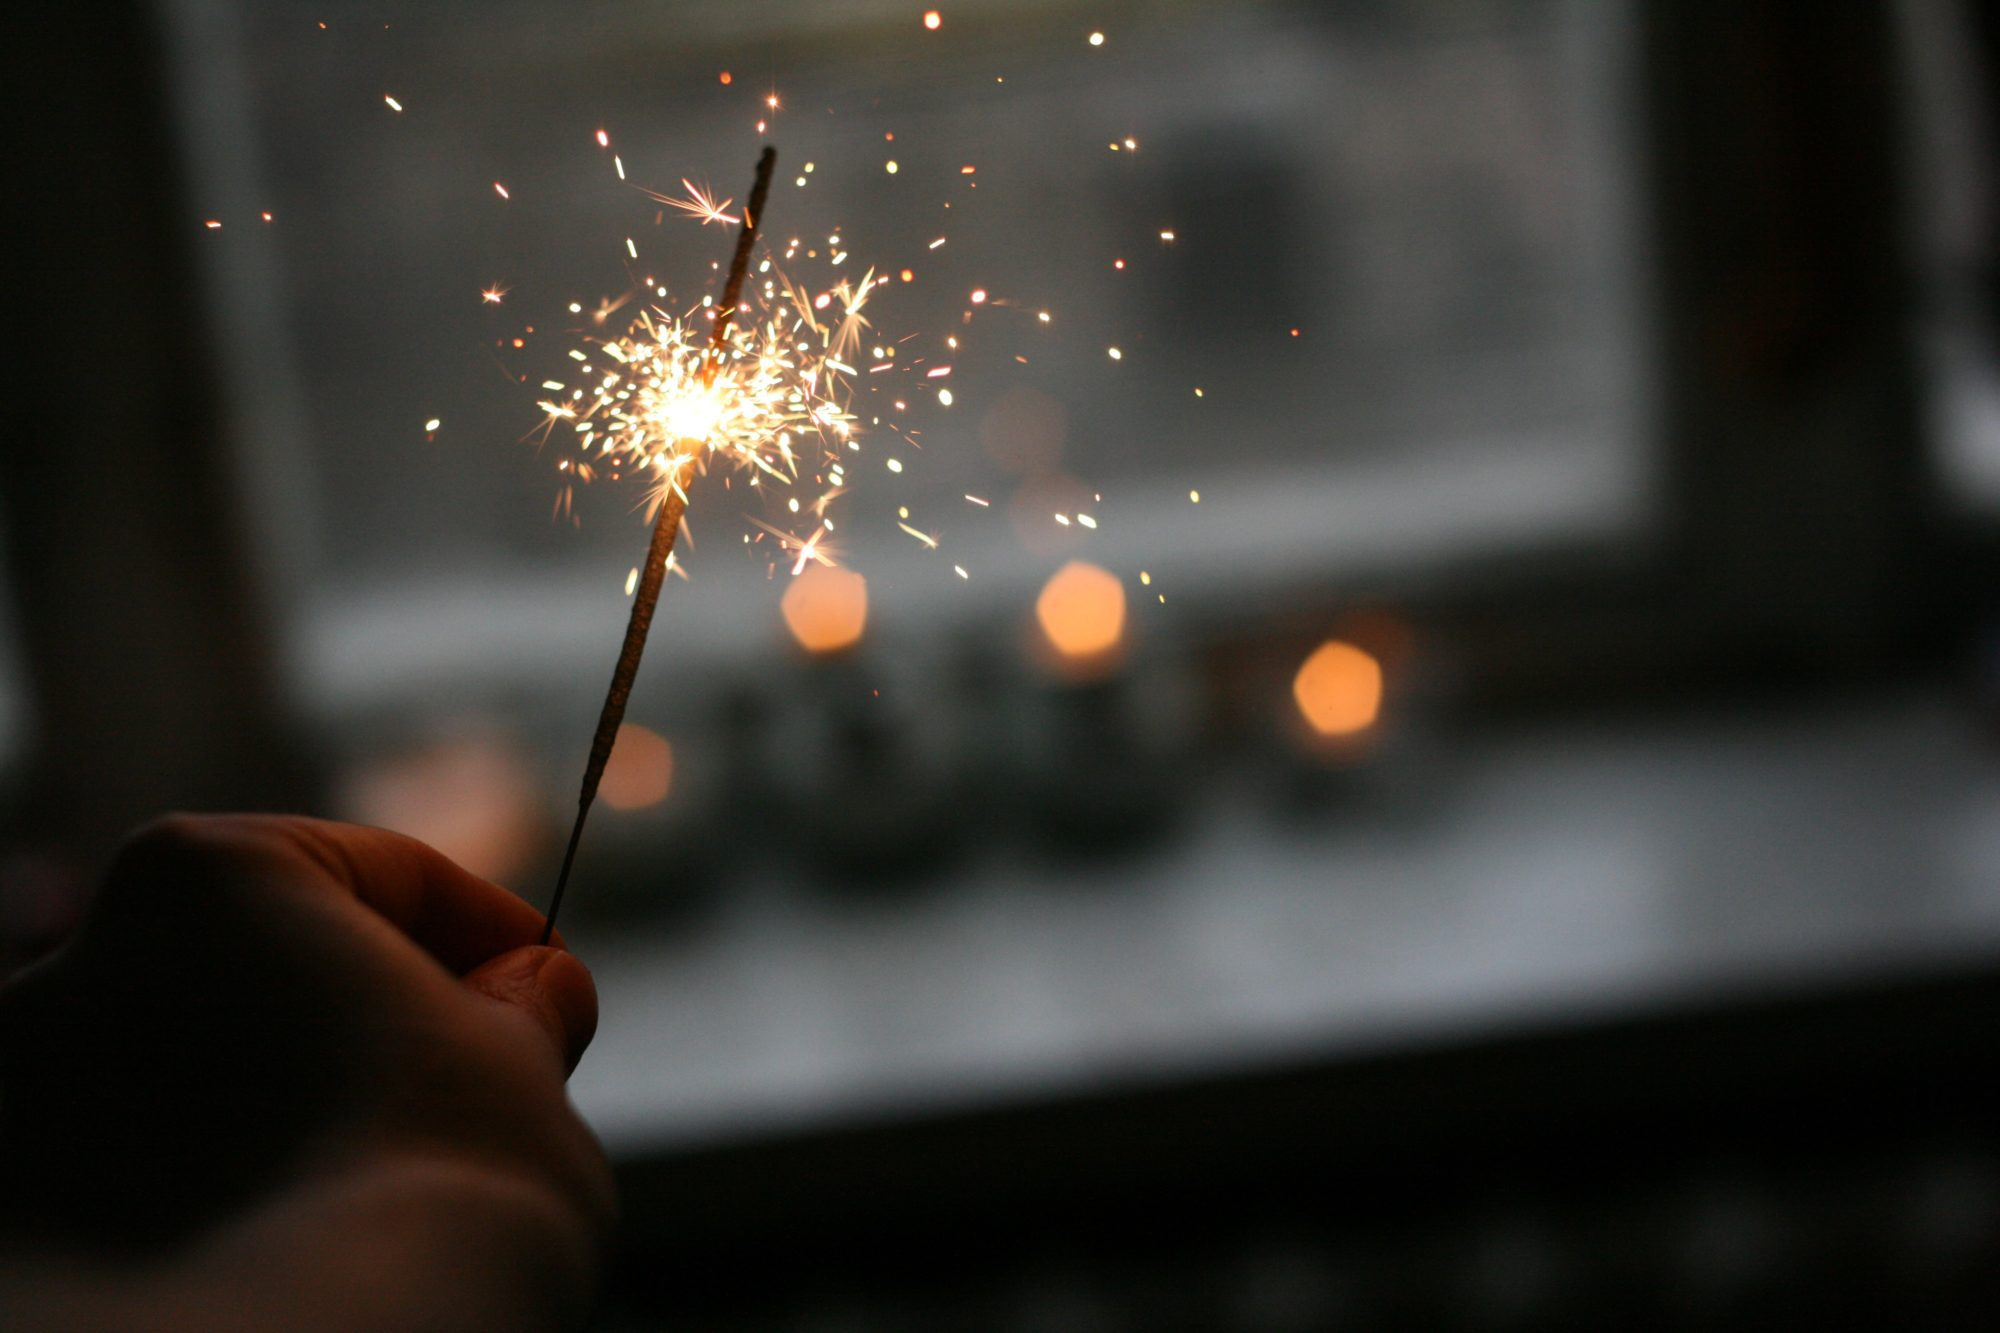 Person's hand holding a sparkler that is lit and sparkling